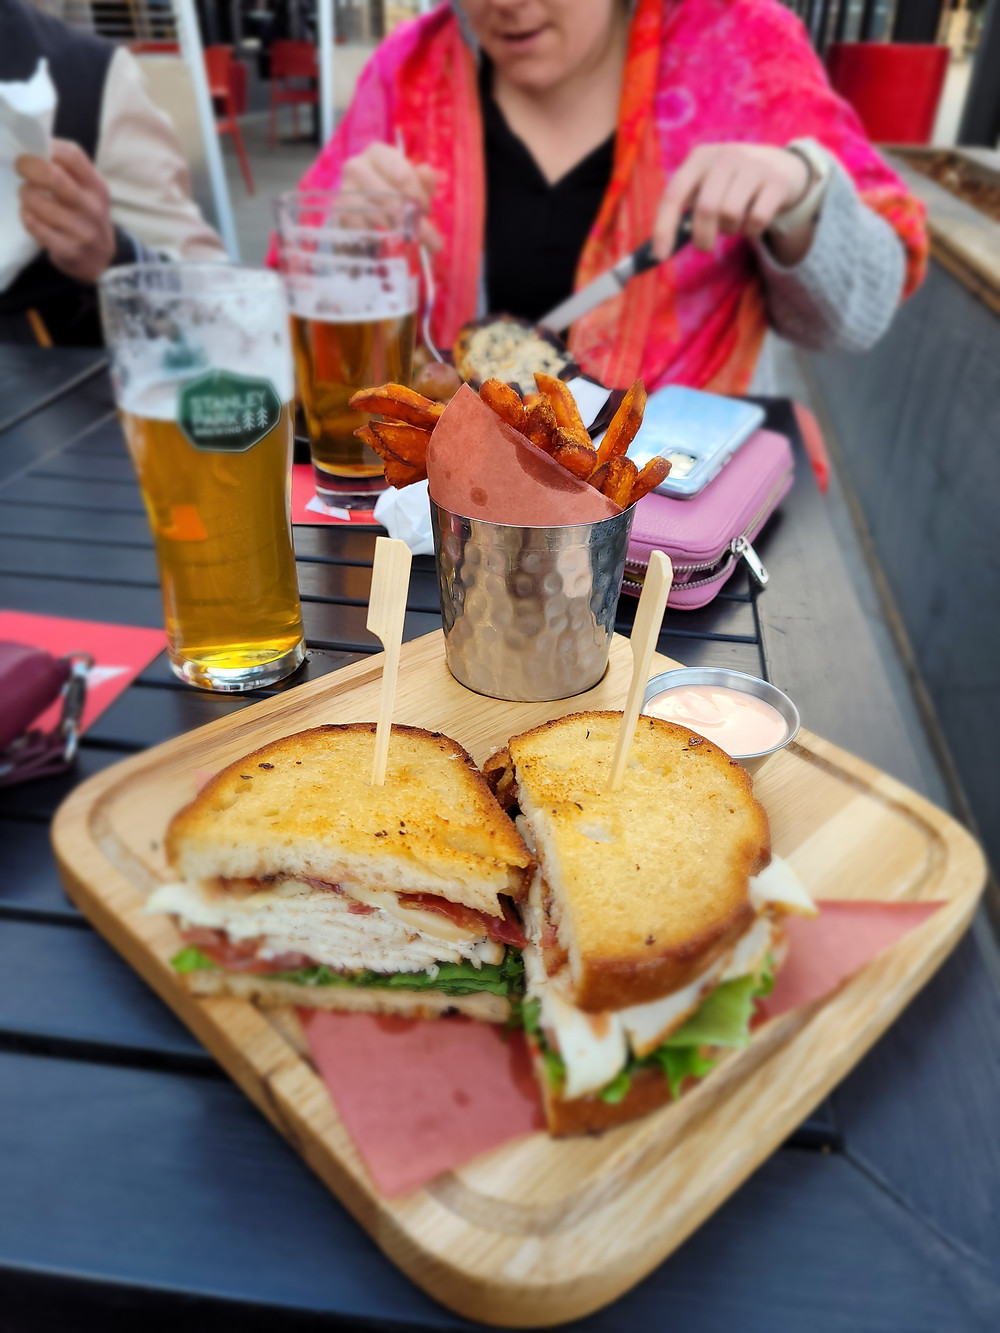 beer, brewery, Vernon, food, drinks, chill, friends, craft beers, pint, sandwich